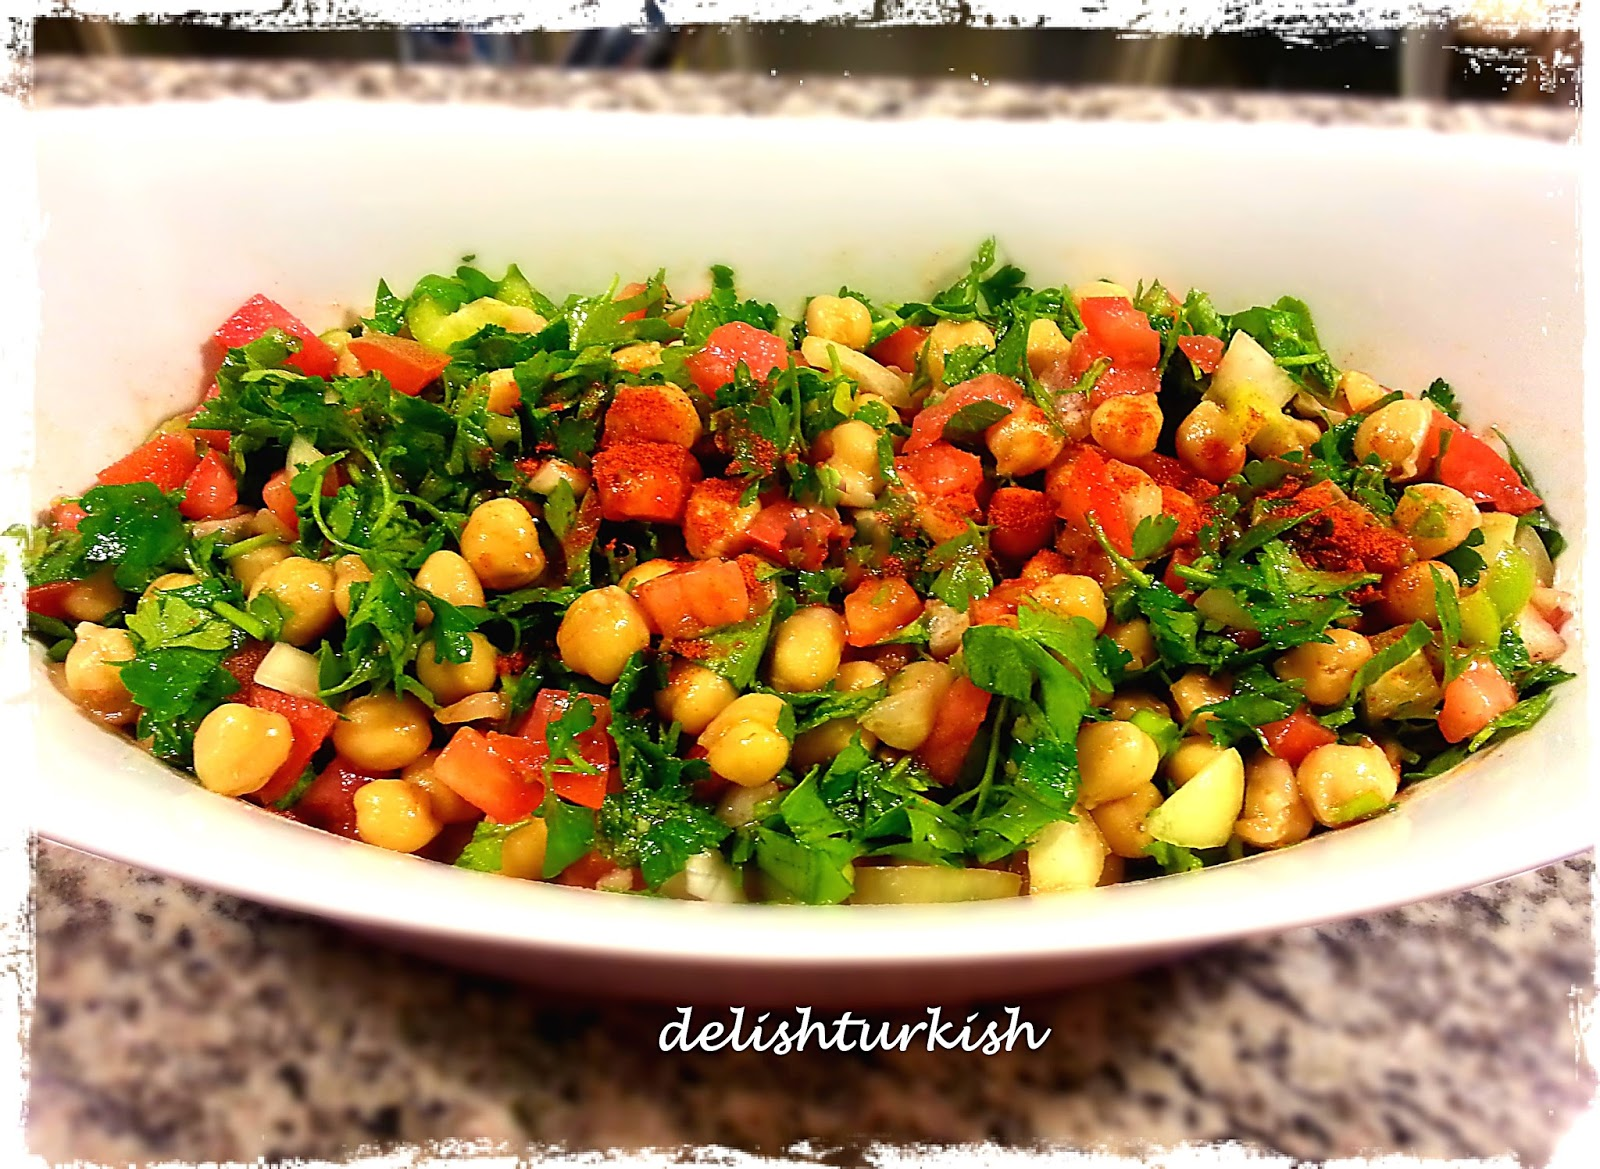 Delicious turkish food recipes chickpea salad nohut salatasi chickpea salad nohut salatasi forumfinder Images